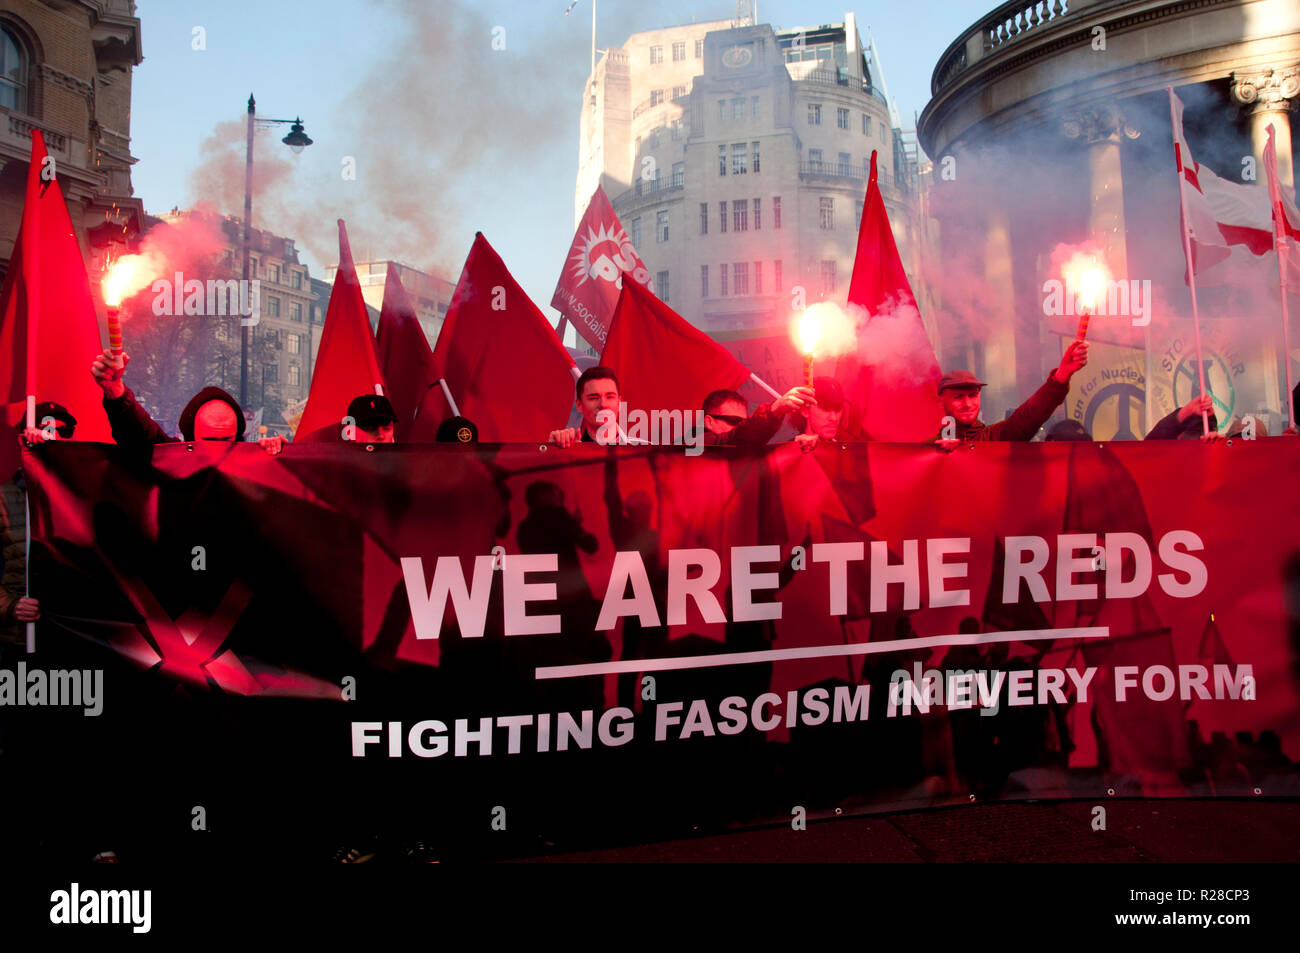 London, UK. 17th Nov, 2018. National Unity Demonstration Against Fascism & Racism, Central London on 17th November 2018 to protest against racist and Islamophobic attacks. A group of mostly young men light red flares and stand behind their banner 'We are the Reds'. Credit: Jenny Matthews/Alamy Live News - Stock Image